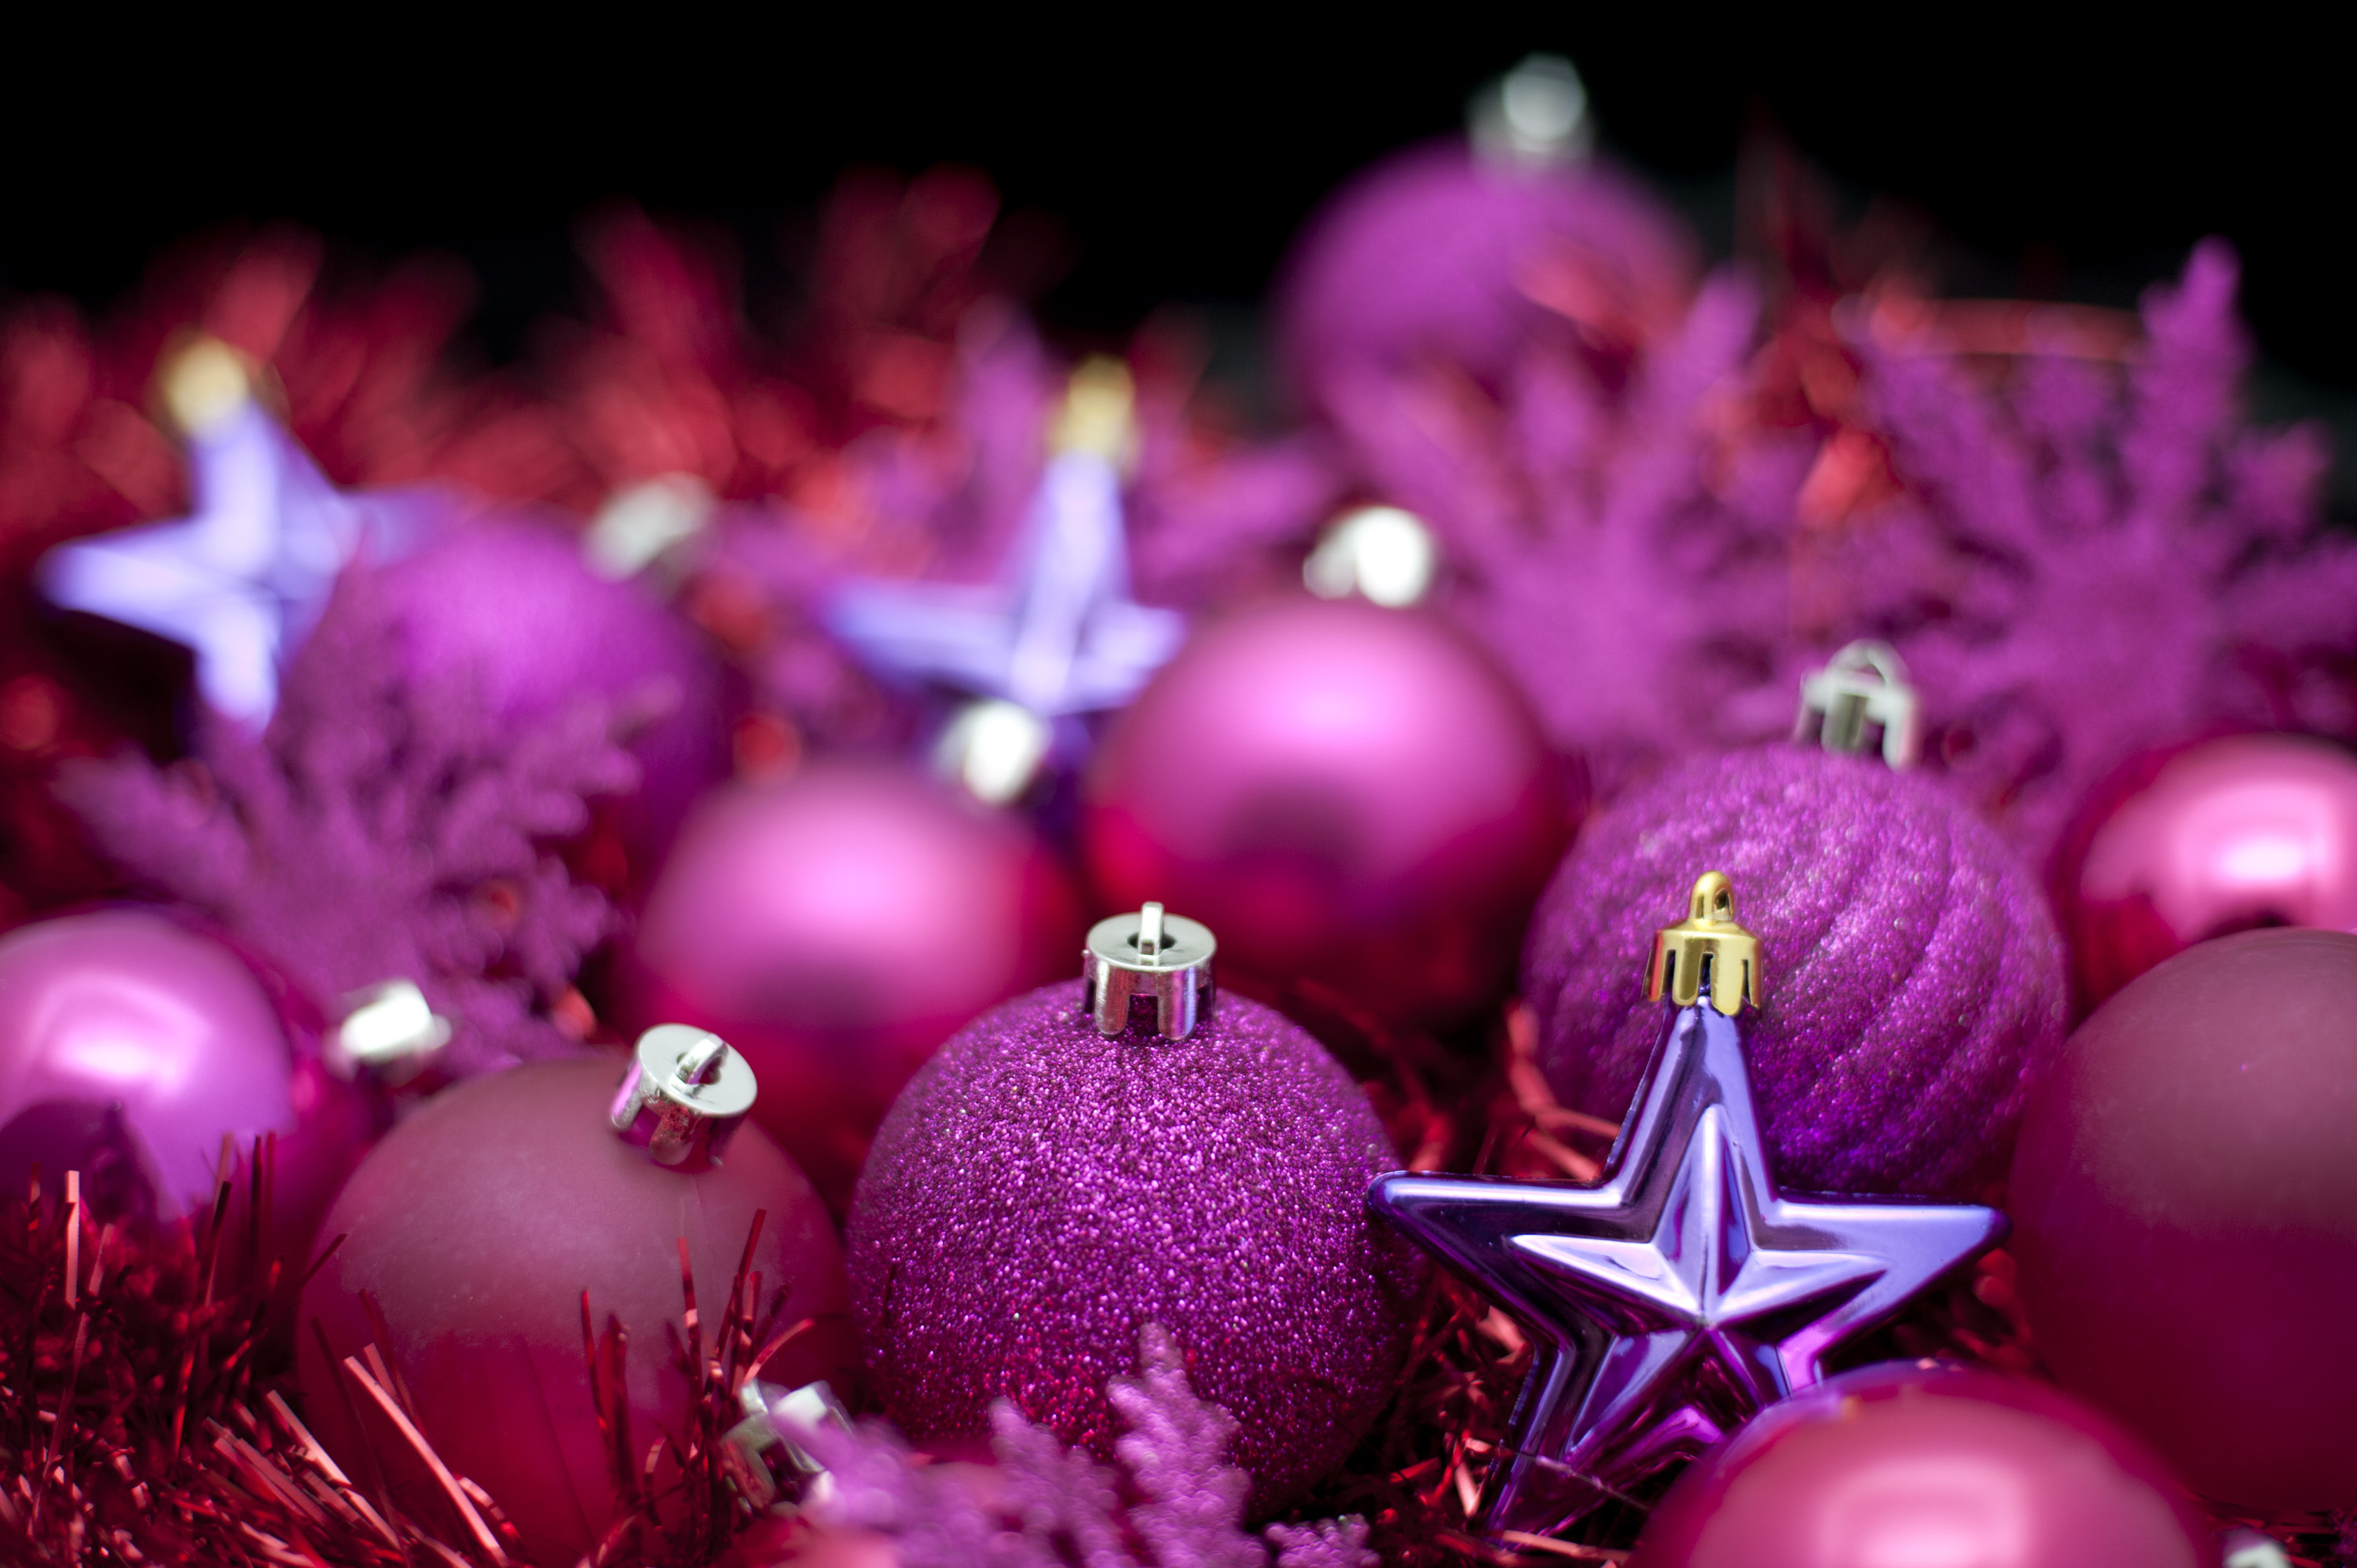 Festive background of purple Christmas decorations, baubles and stars with shallow dof